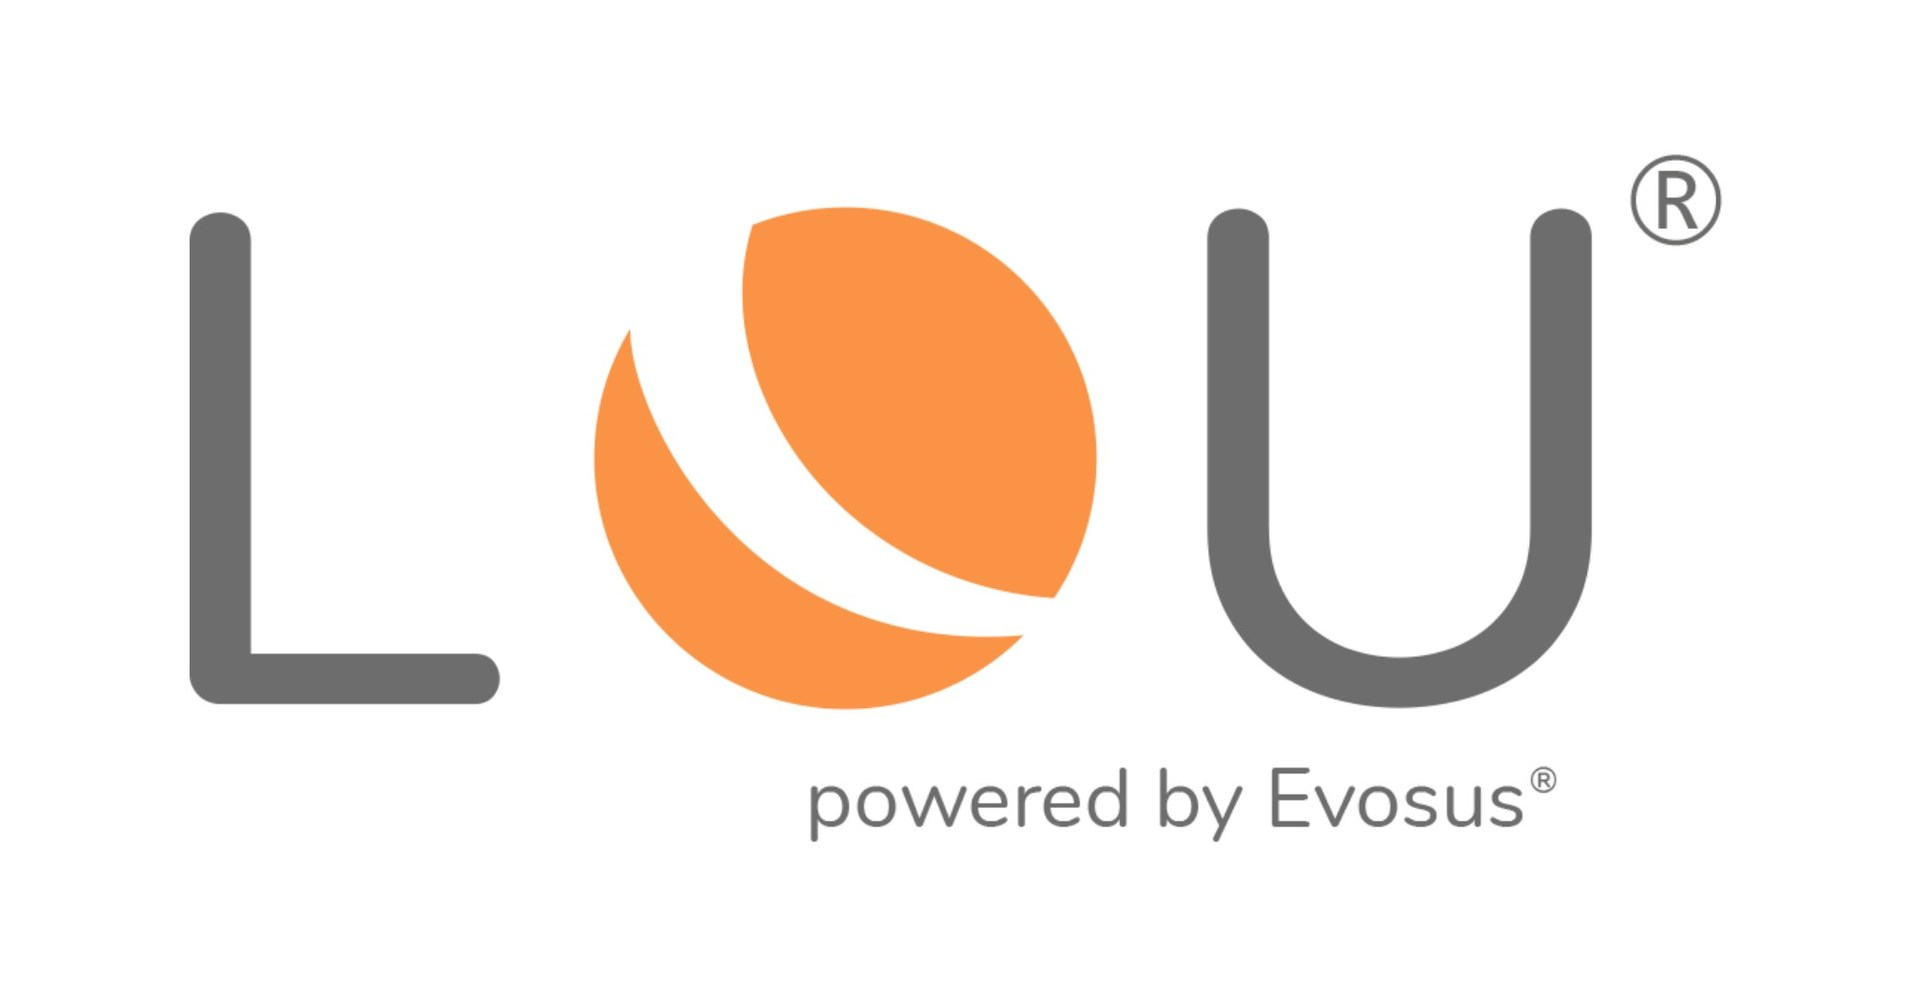 VANCOUVER, Wash., Sept. 22, 2020 /PRNewswire/ -- Evosus, a leader in business software development, has launched a new cloud-based ERP software solution. LOU integrates retail / point of sale, field service and multi-site inventory – all within one software p…